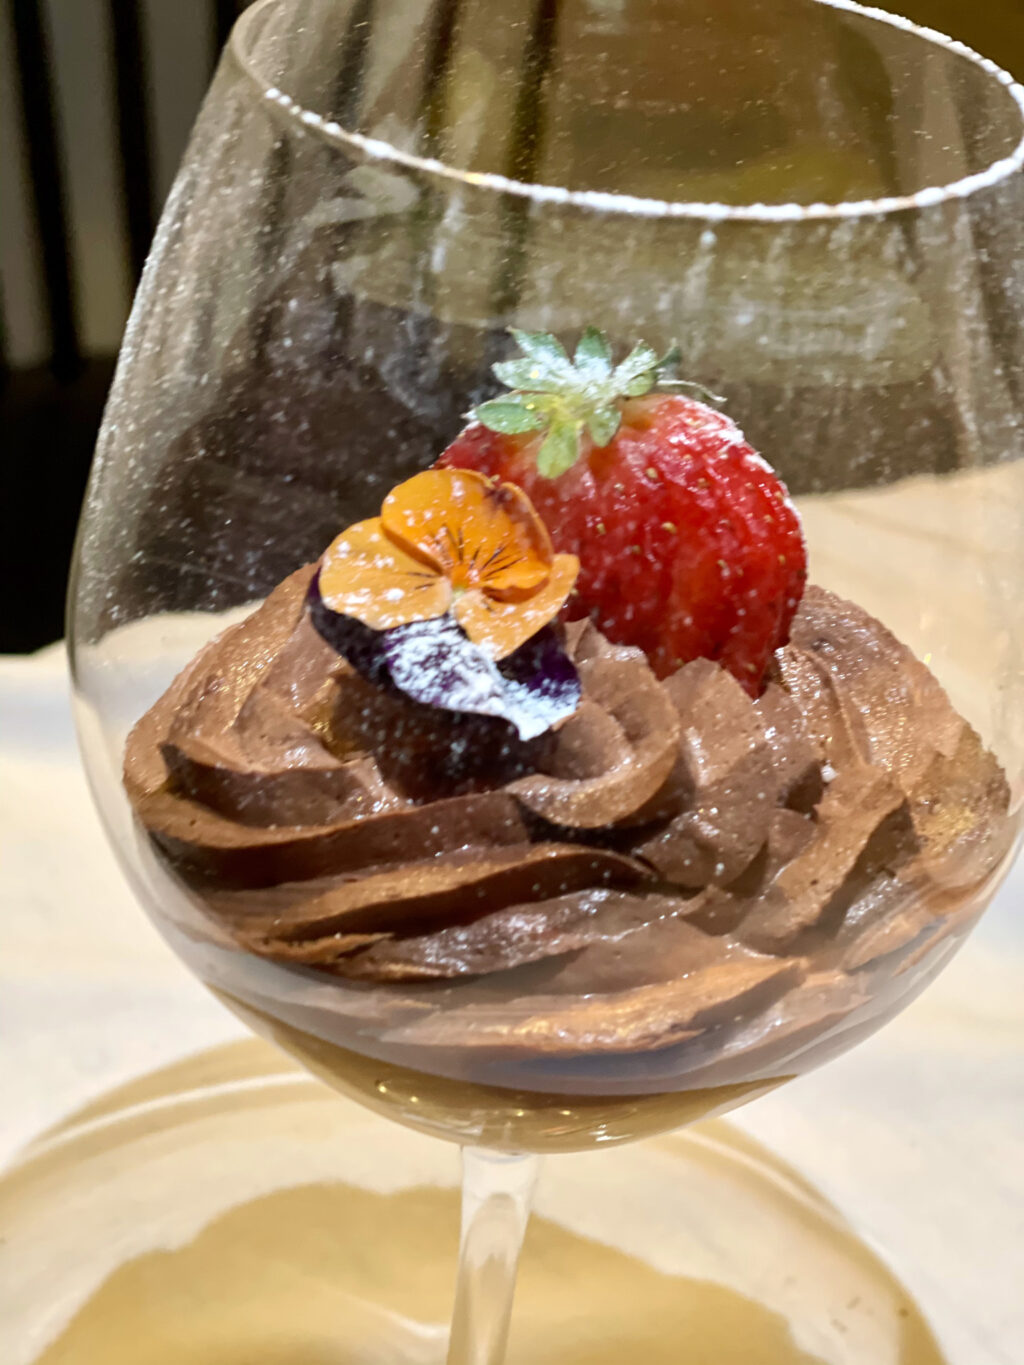 Belgium chocolate mousse